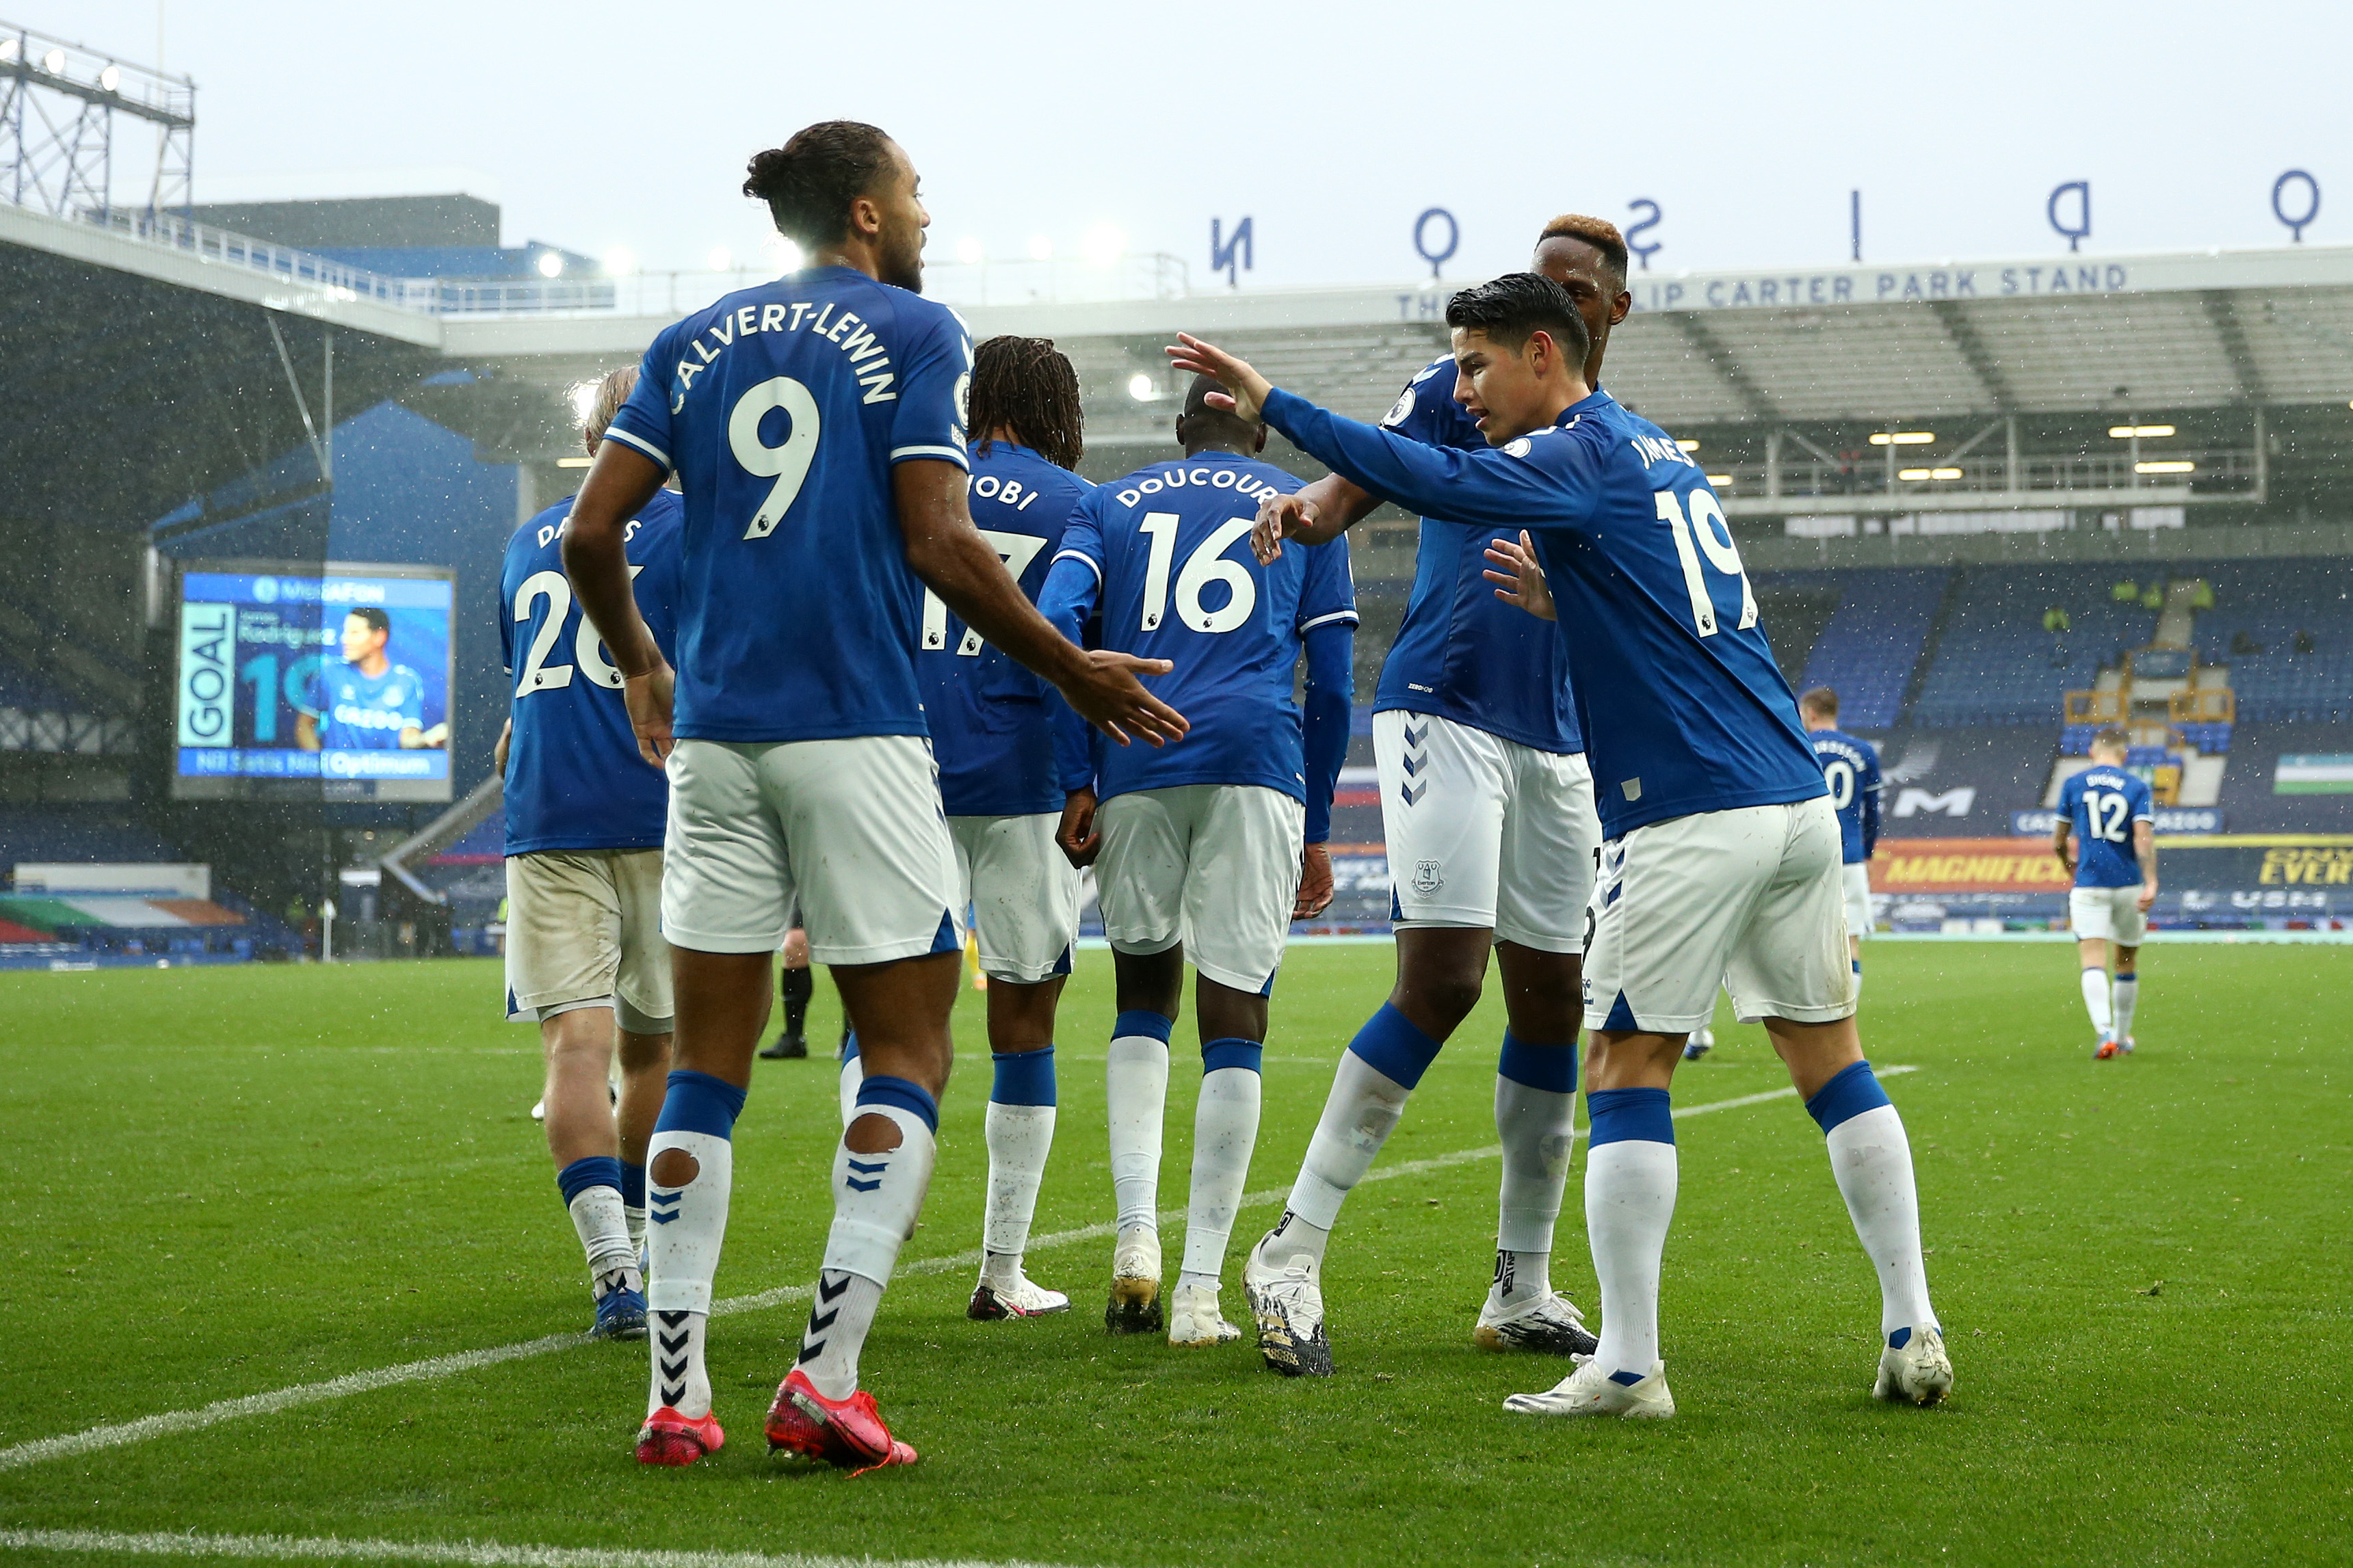 3-4-3 Everton Predicted Lineup Vs Leeds United (Everton players are celebrating in the photo)